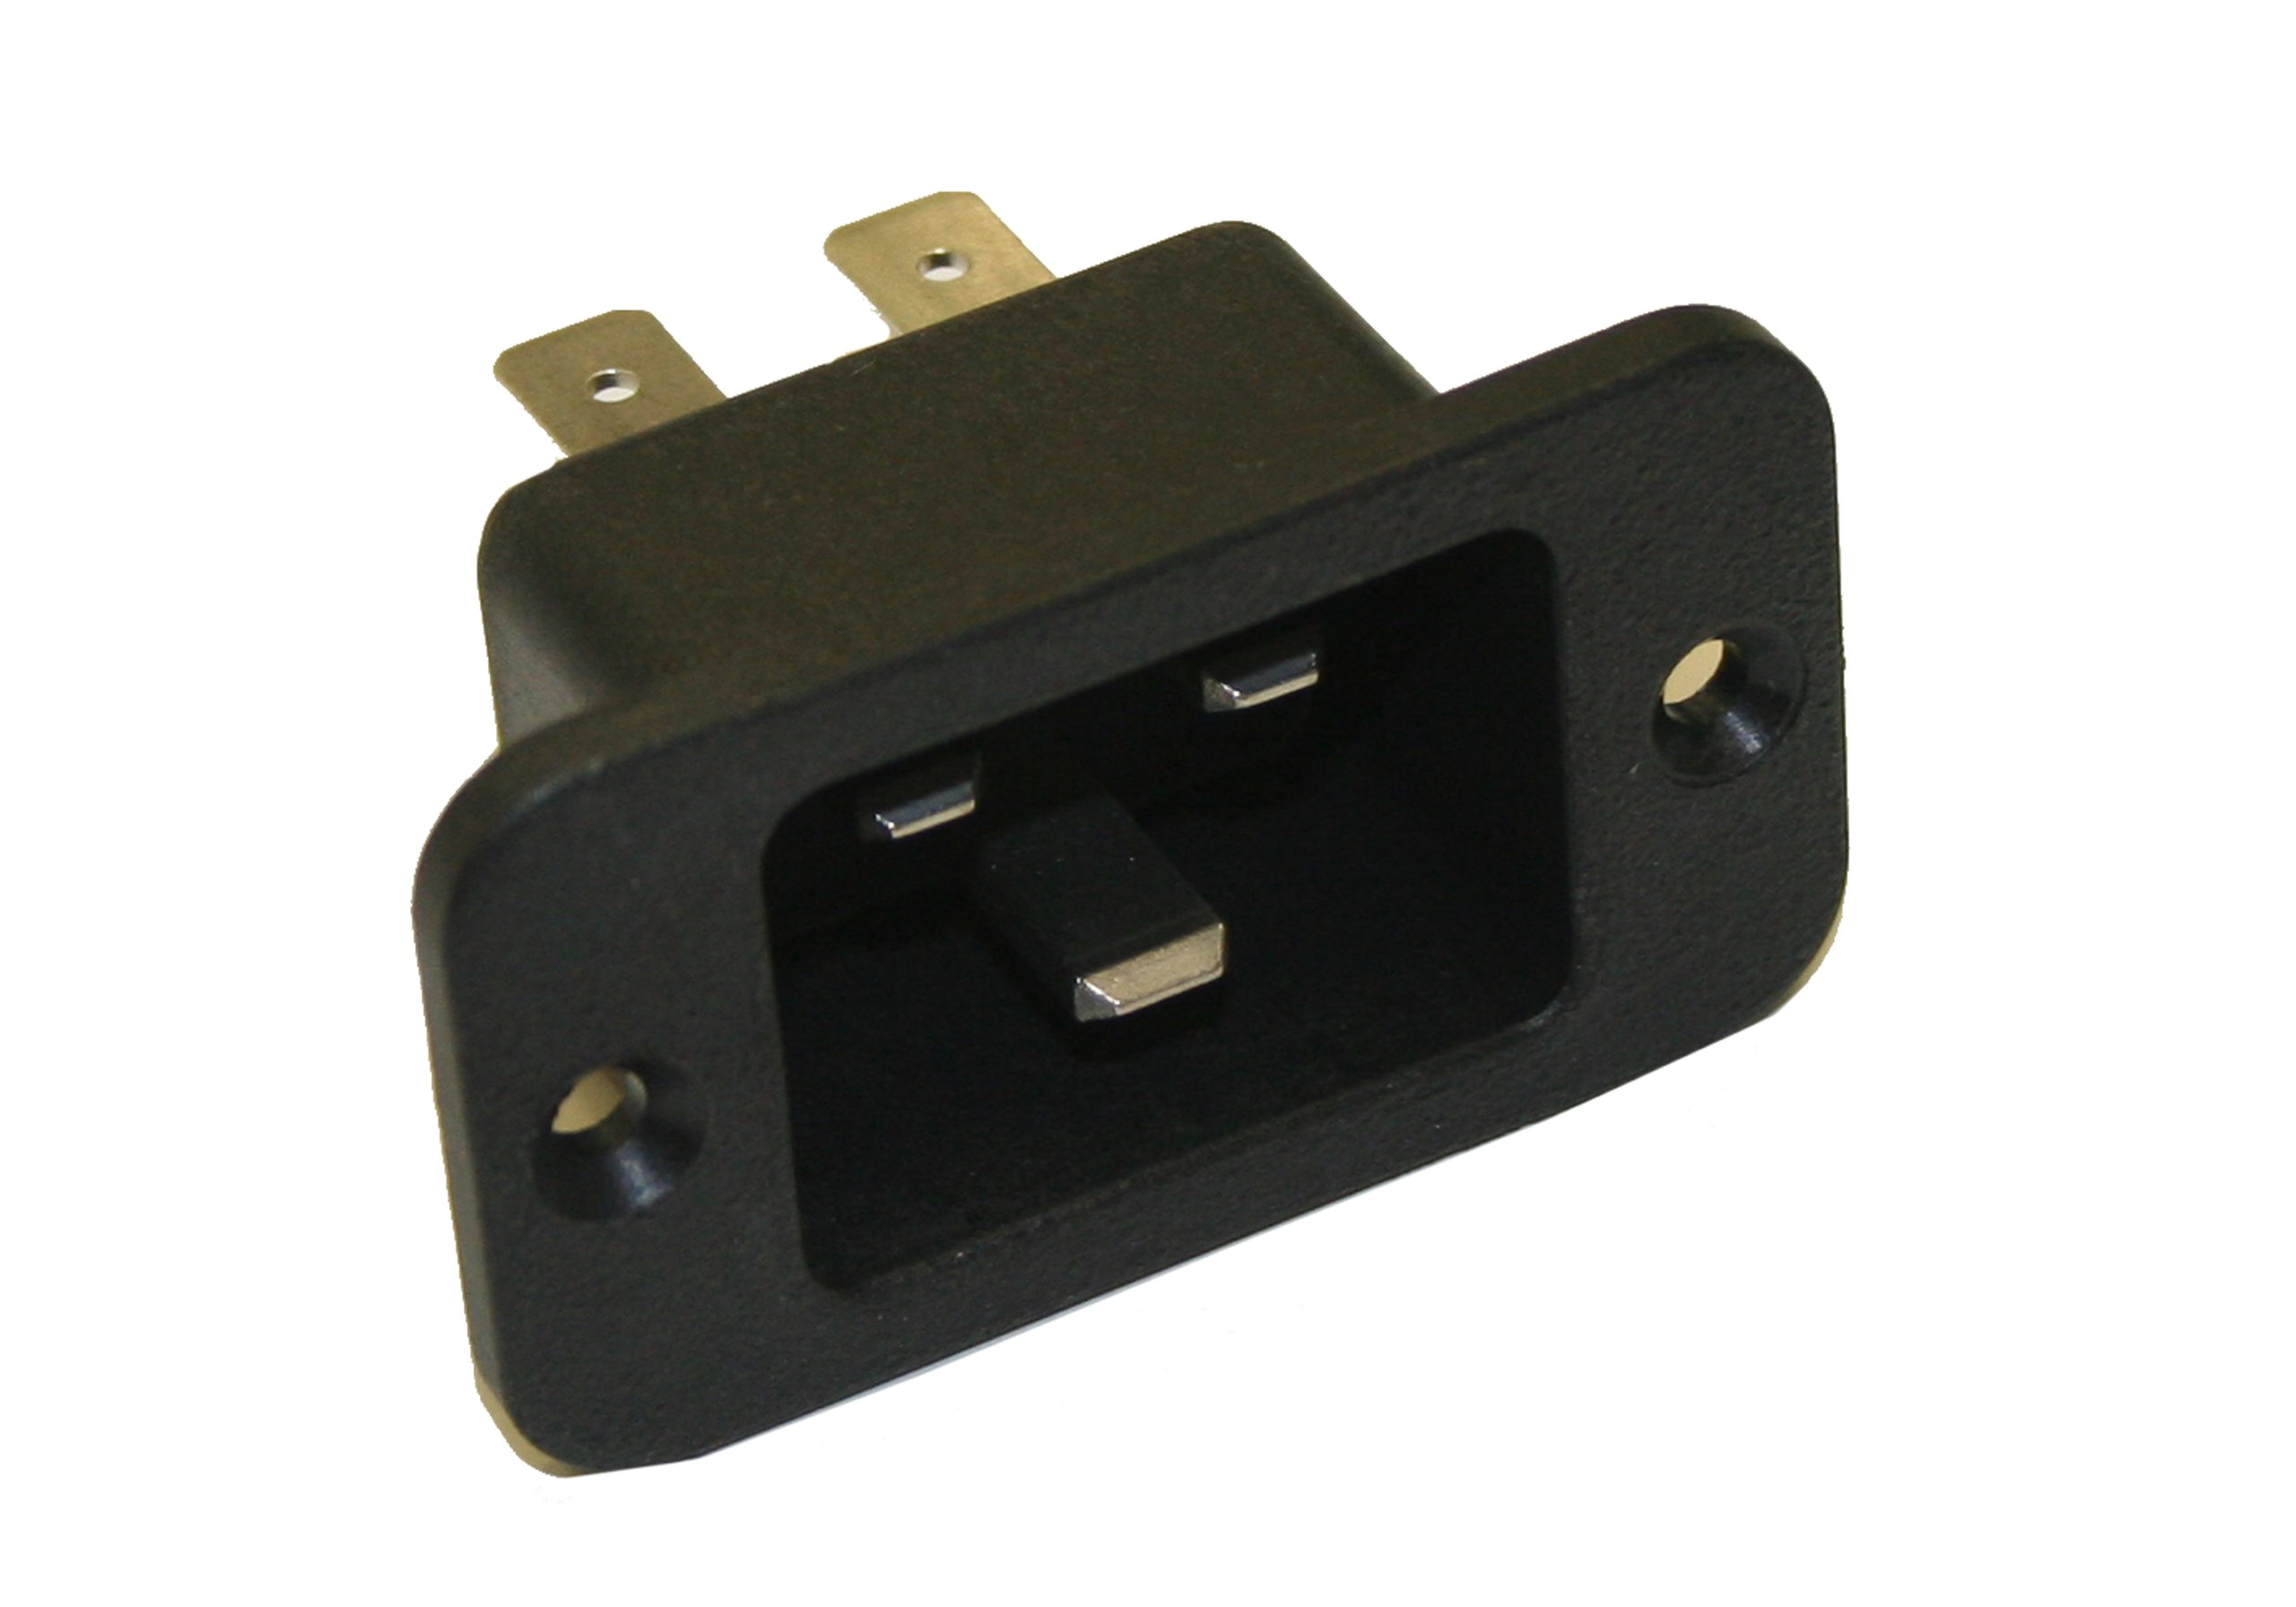 Interpower 83030400 IEC 60320 C20 Power Inlet with Quick Disconnects, IEC 60320 C20 Socket Type, Black, 16A/20A Rating, 250VAC Rating by Interpower